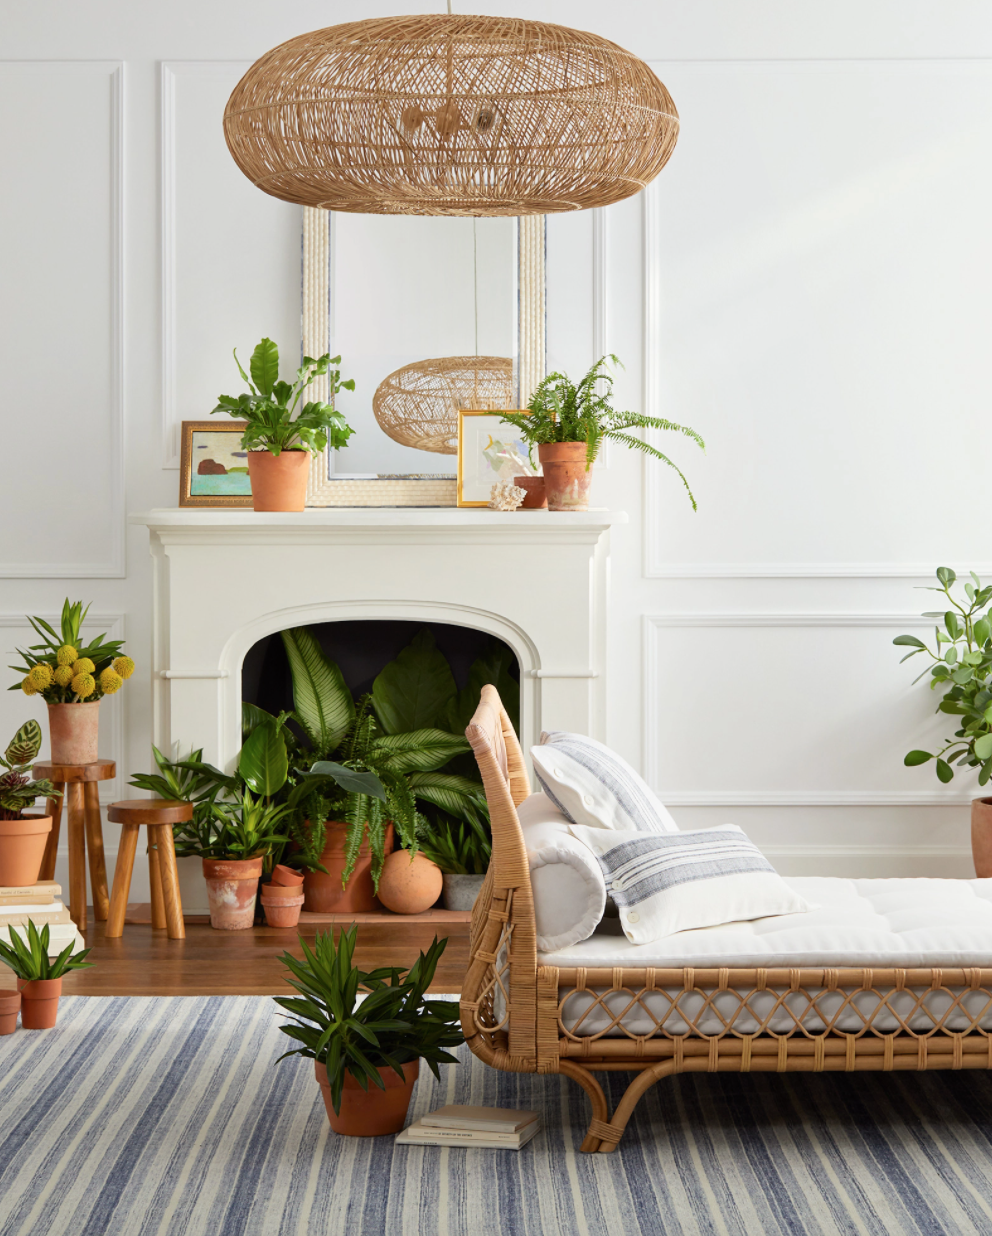 A rattan day bed in an airy room full of plants in terracotta planters